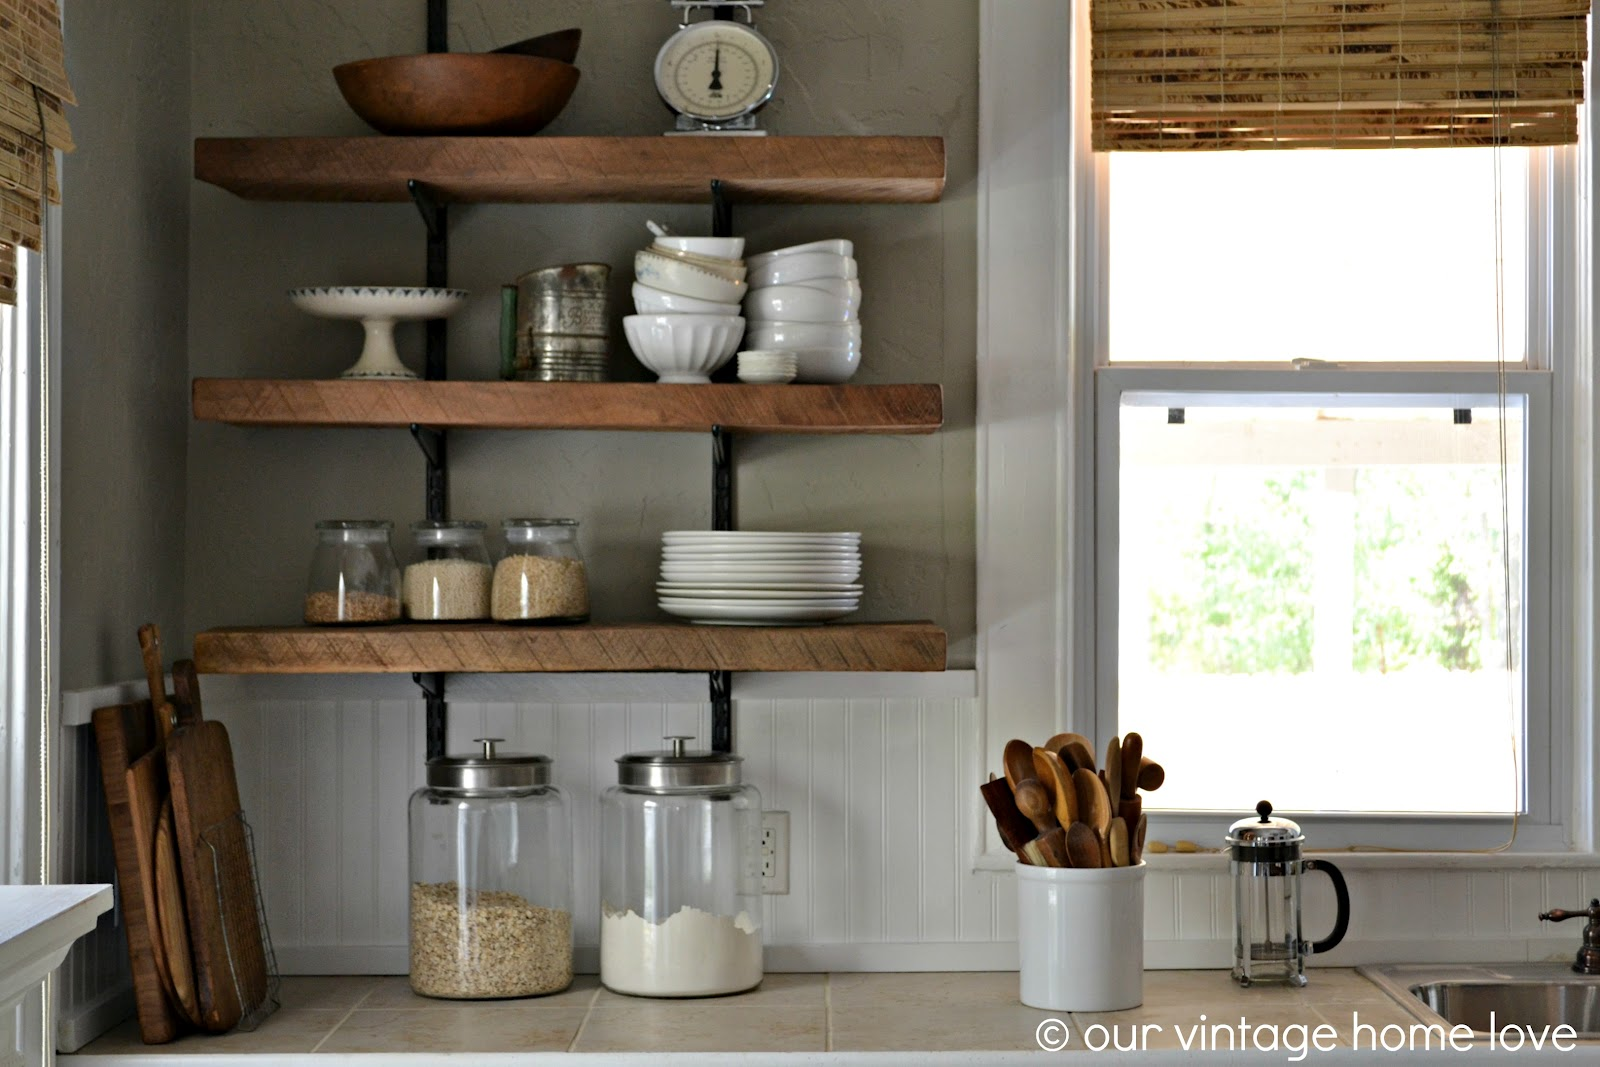 Kitchen Shelving Our Vintage Home Love Reclaimed Wood Kitchen Shelving Reveal